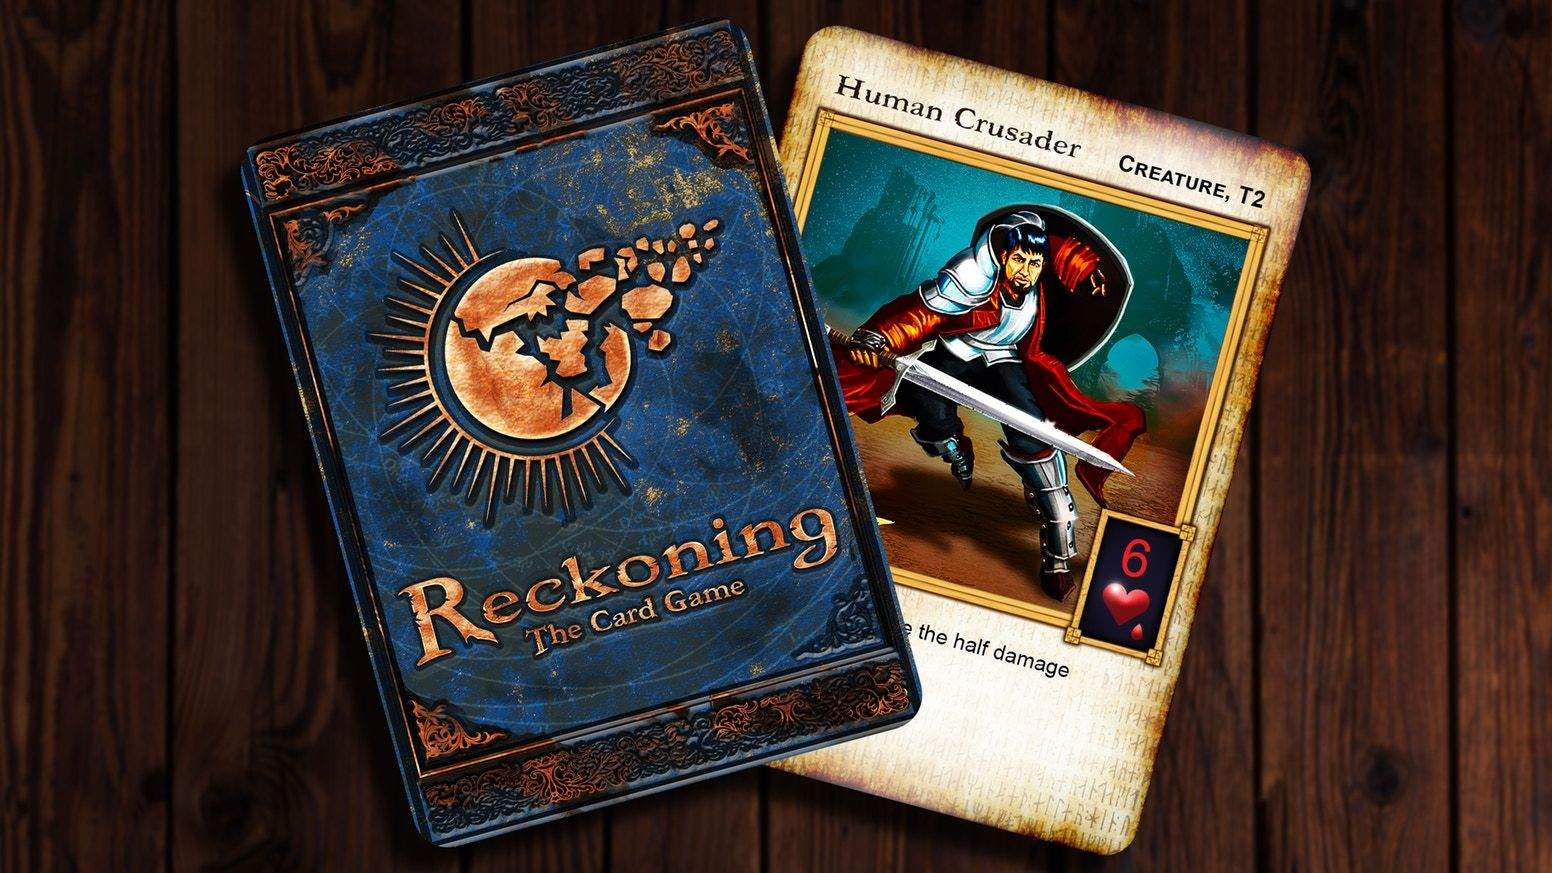 a combatbased card game set in a gothic horror world